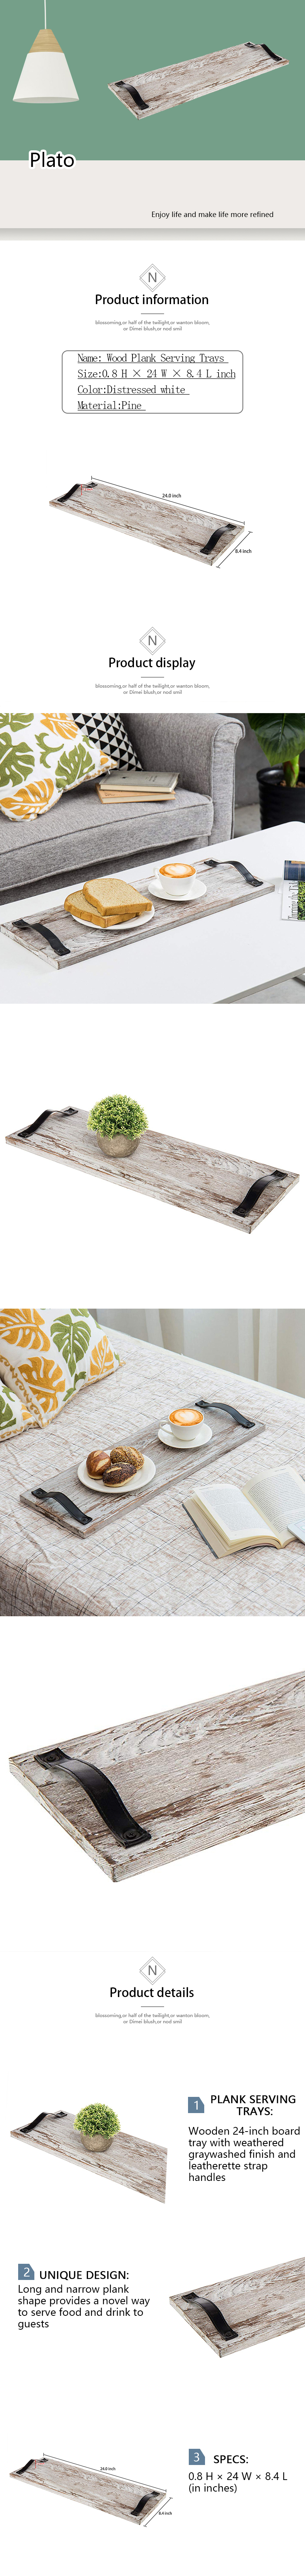 24-Inch  Wood Plank Serving Trays with Strap Handles